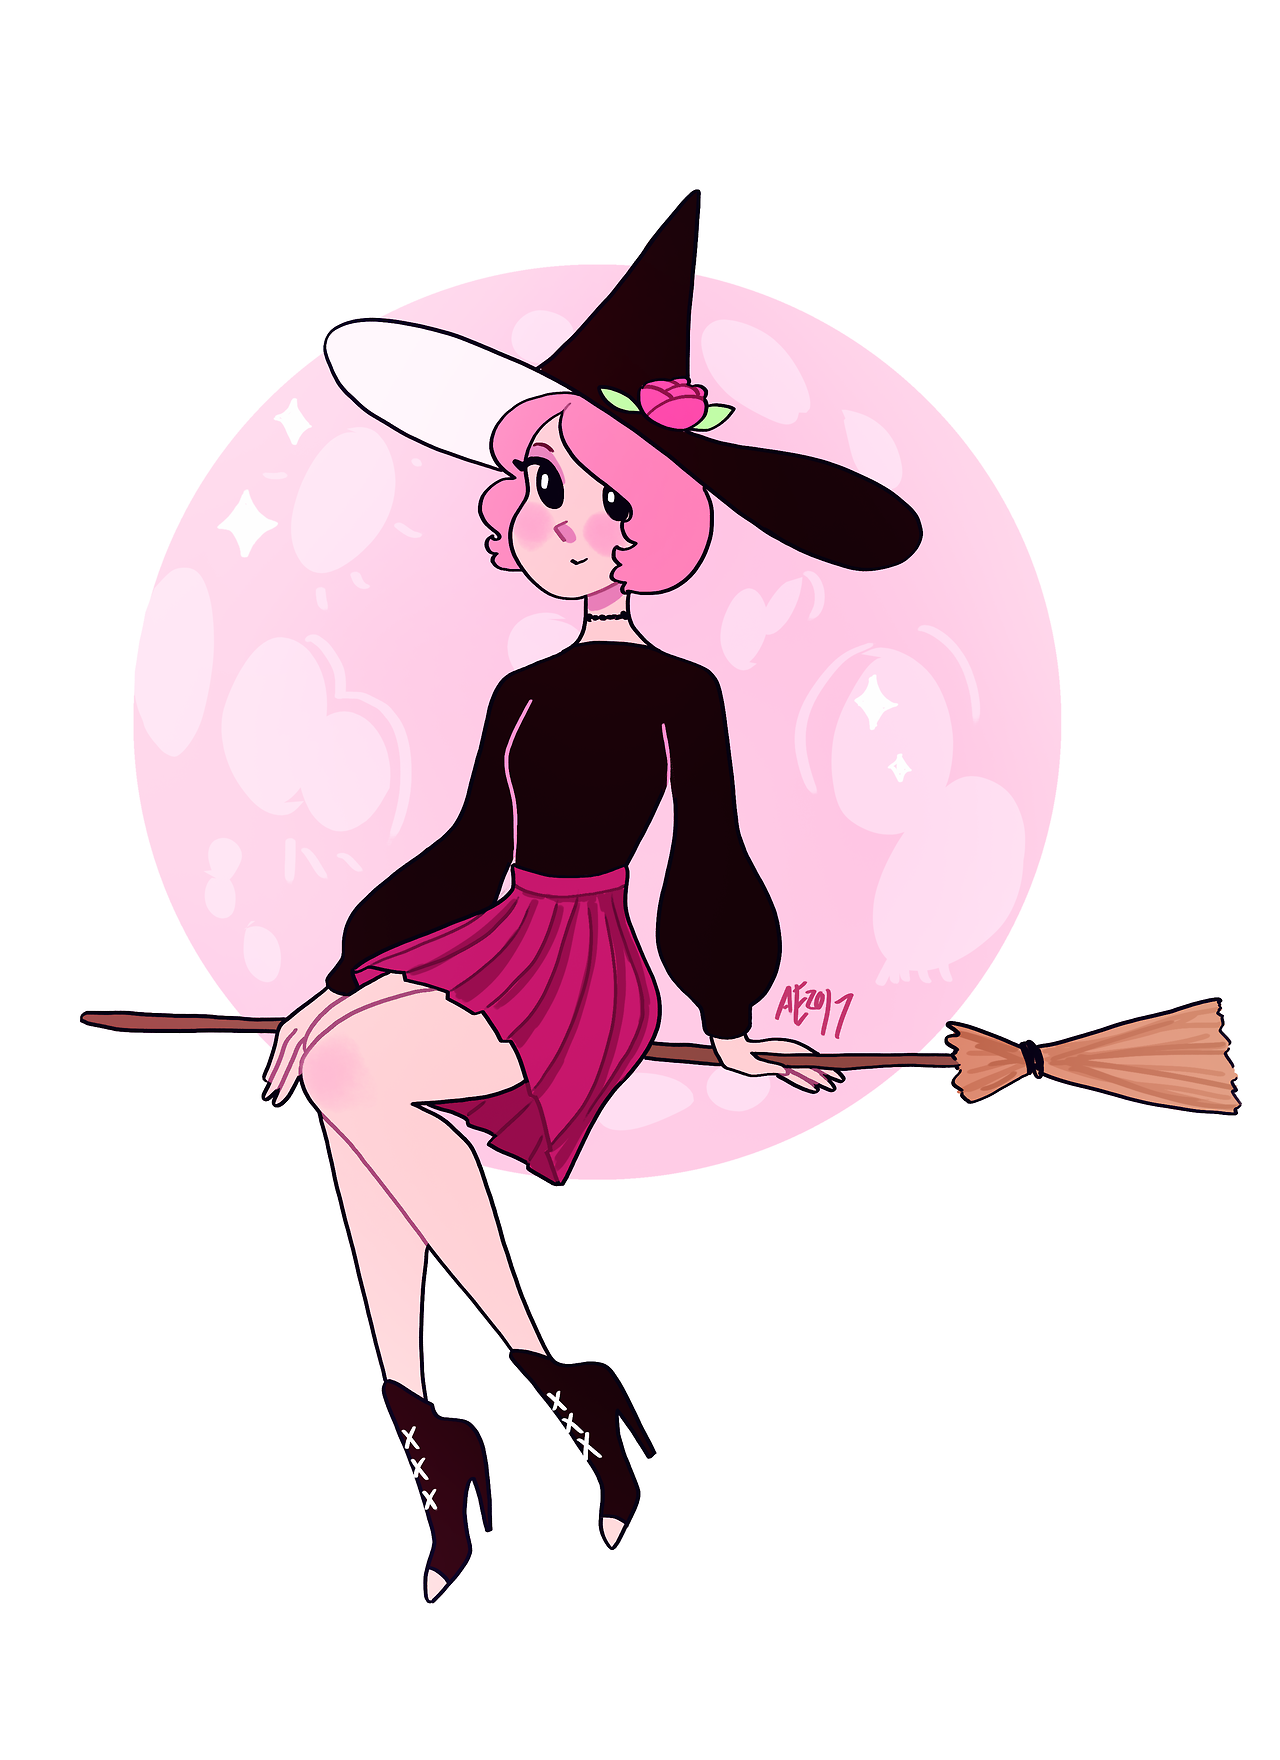 I don't care if it's July I will still draw witch gems and you can't stop me